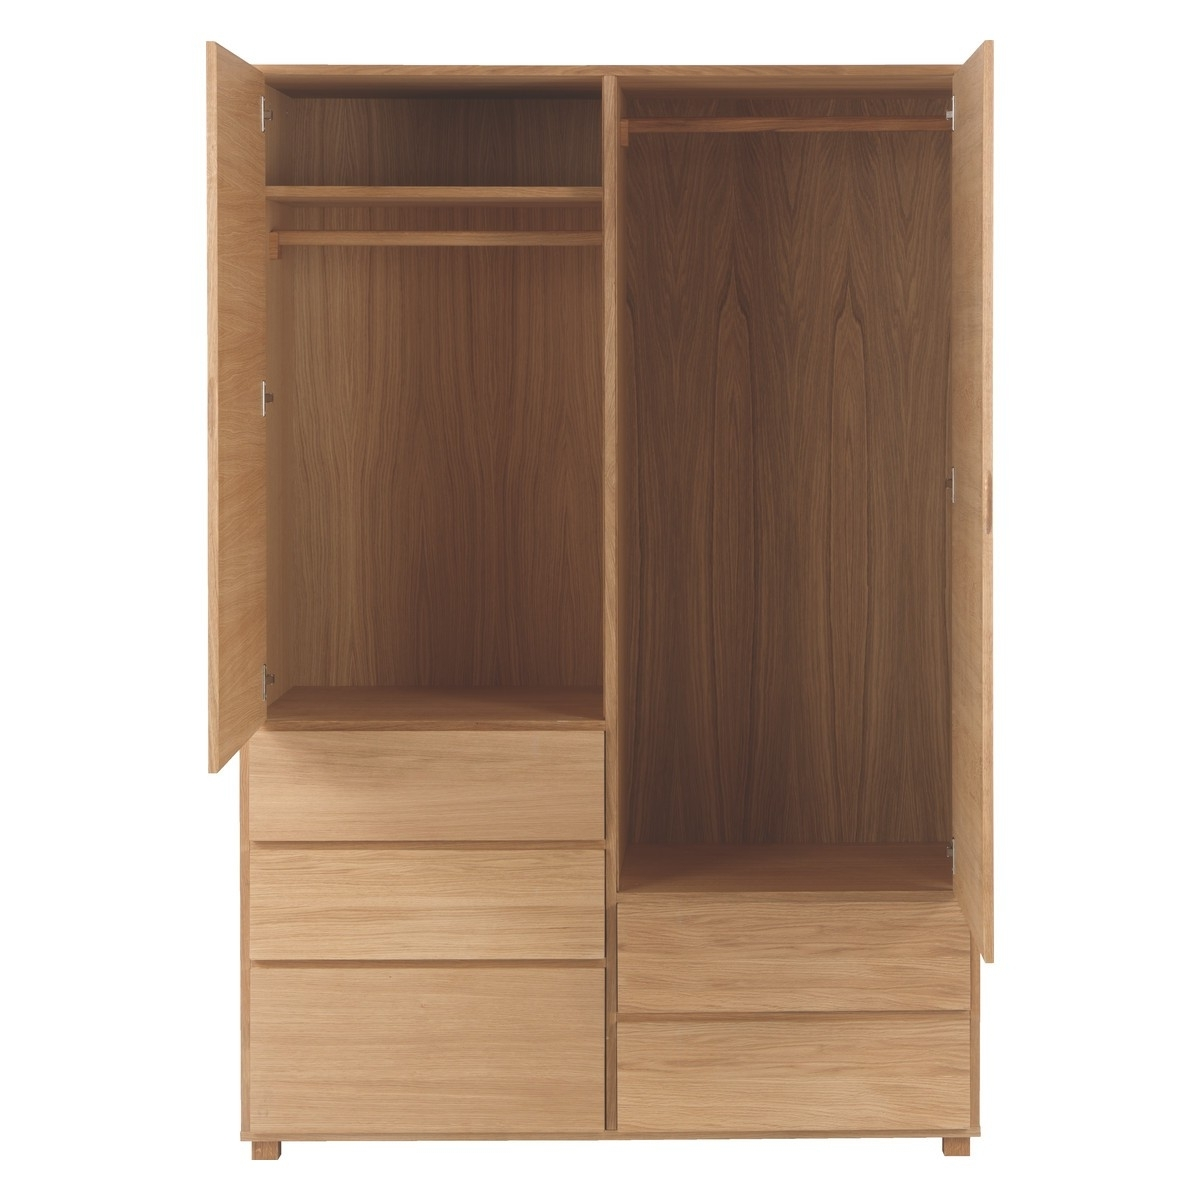 Most Recently Released 2 Door Wardrobes With Drawers And Shelves With Regard To 2 Door Wardrobe Brown Cream With Drawers Cabinet Make Your Room (View 12 of 15)